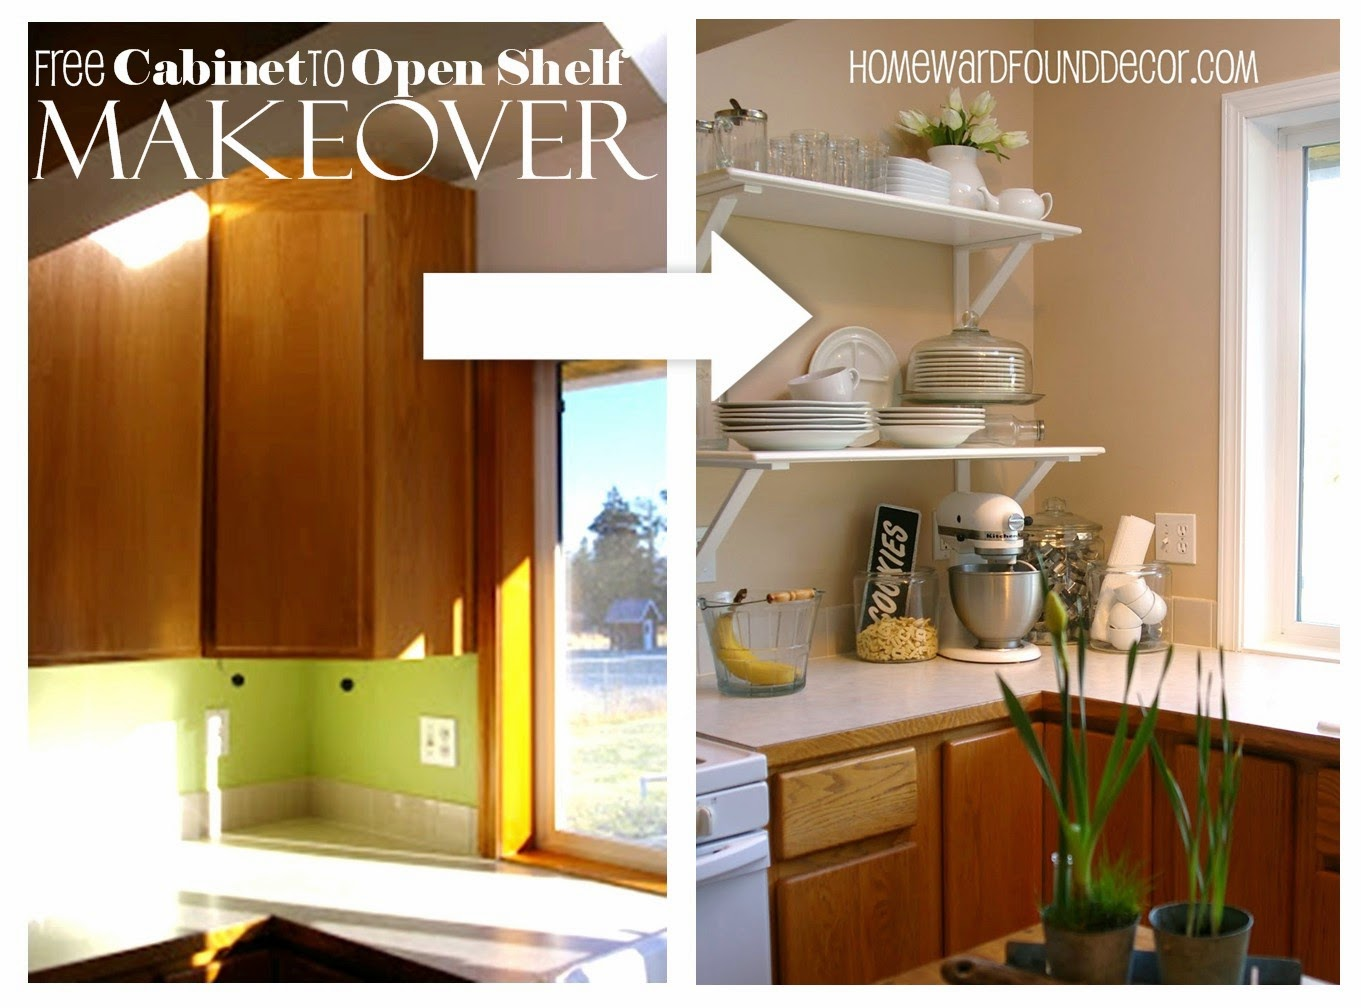 Diy kitchen cabinet to shelf makeoverhomewardfounddecor - Kitchen cabinet diy makeover ...